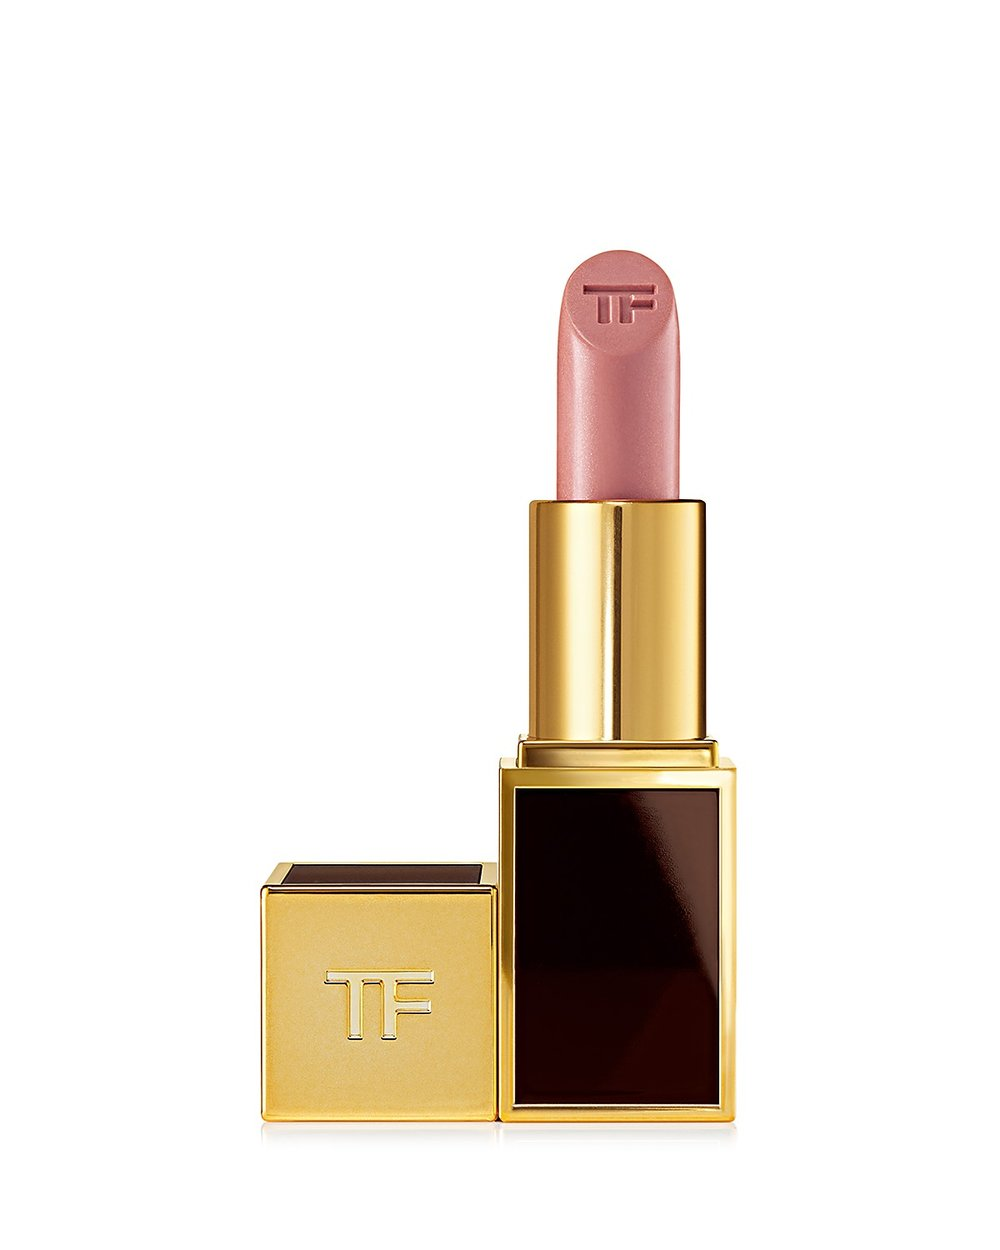 Tom Ford Boys & Girls Lip Color in Dakota ($36) - That pink pout never looked so good. This creamy lipstick stays and makes my lips feel moisturized at the same time. Worth the splurge. #fordme